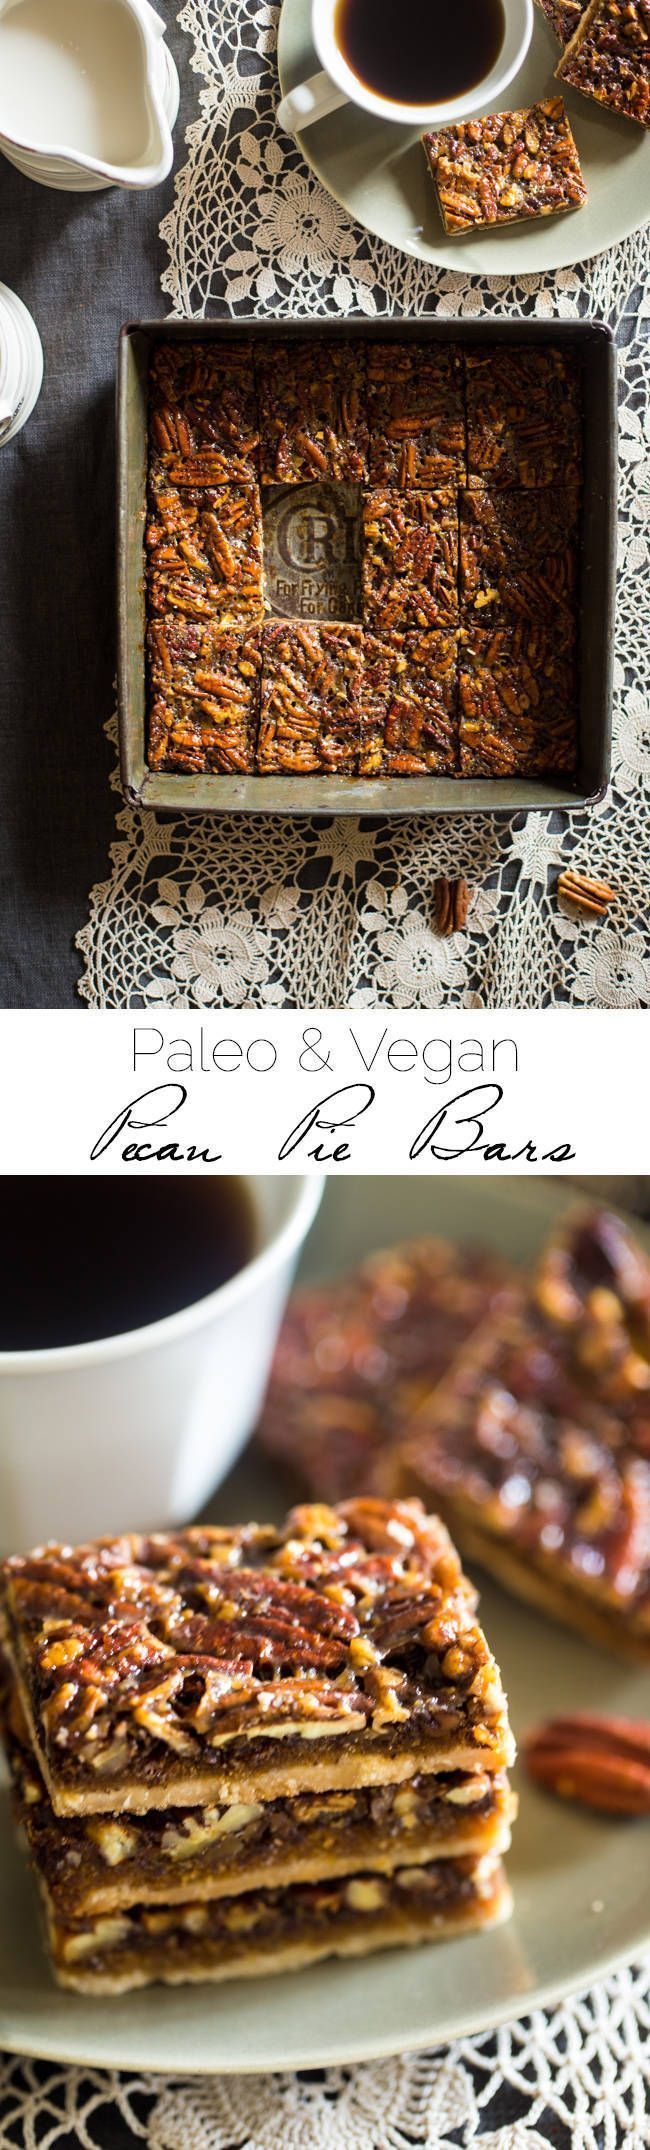 Vegan + Paleo Pecan Pie Bars - These bars are so easy to make and only have 6 ingredients. You would never know they're secretly a healthy, gluten free, and vegan-friendly treat that's perfect for Thanksgiving! | http://Foodfaithfitness.com | @Food Faith Fitness